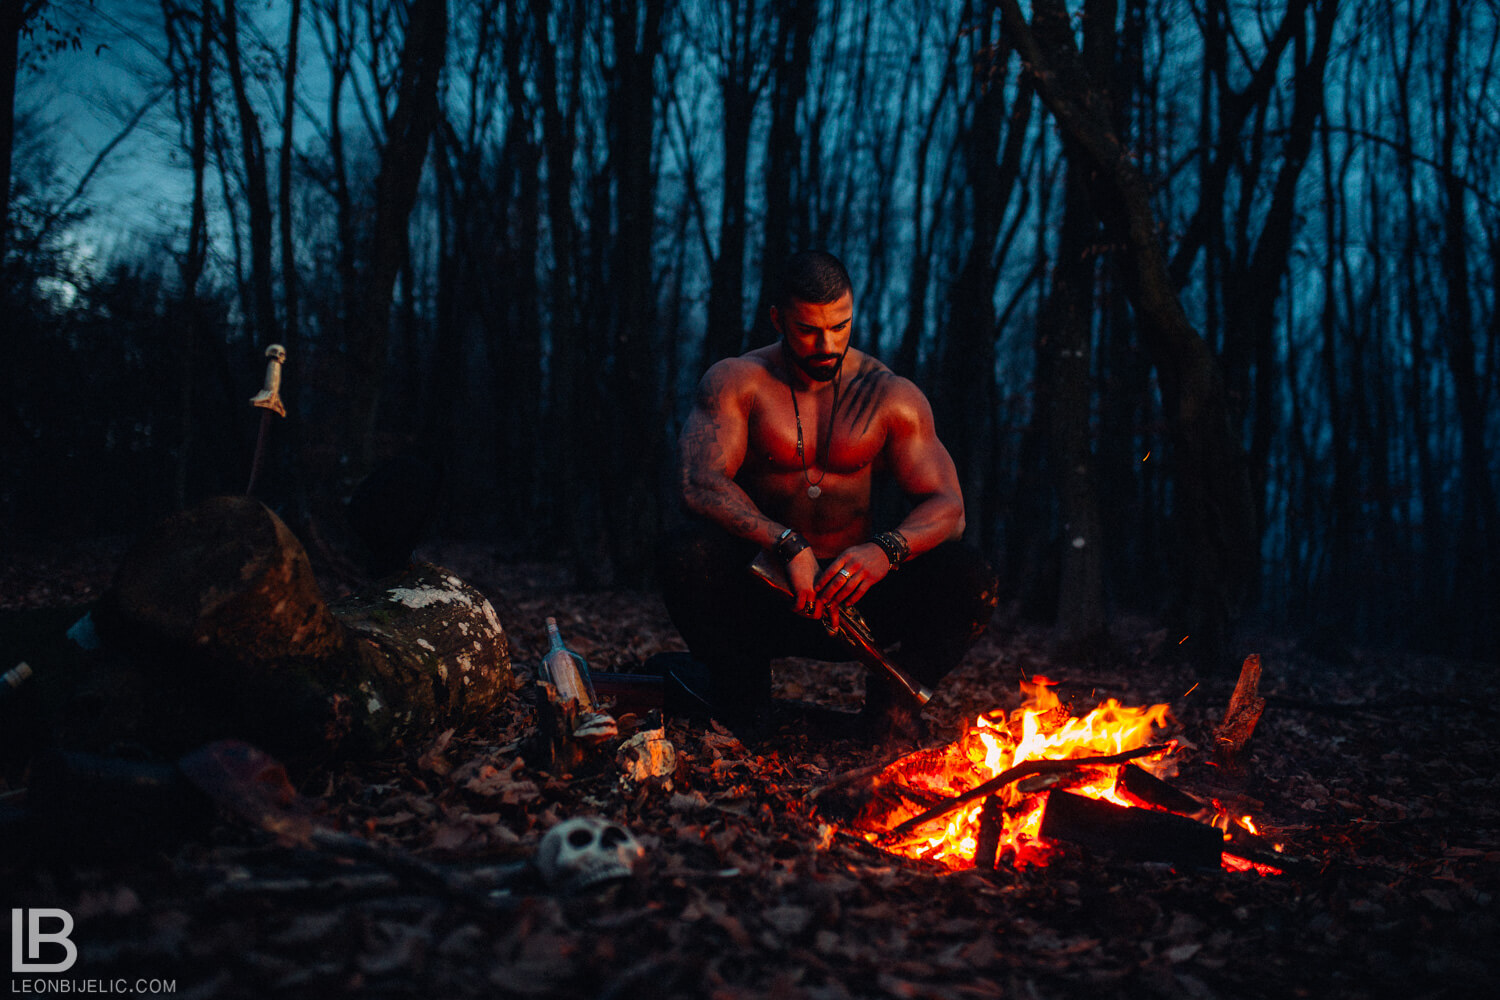 PHOTO SESSION / THE GUARDIAN OF THE WOODS